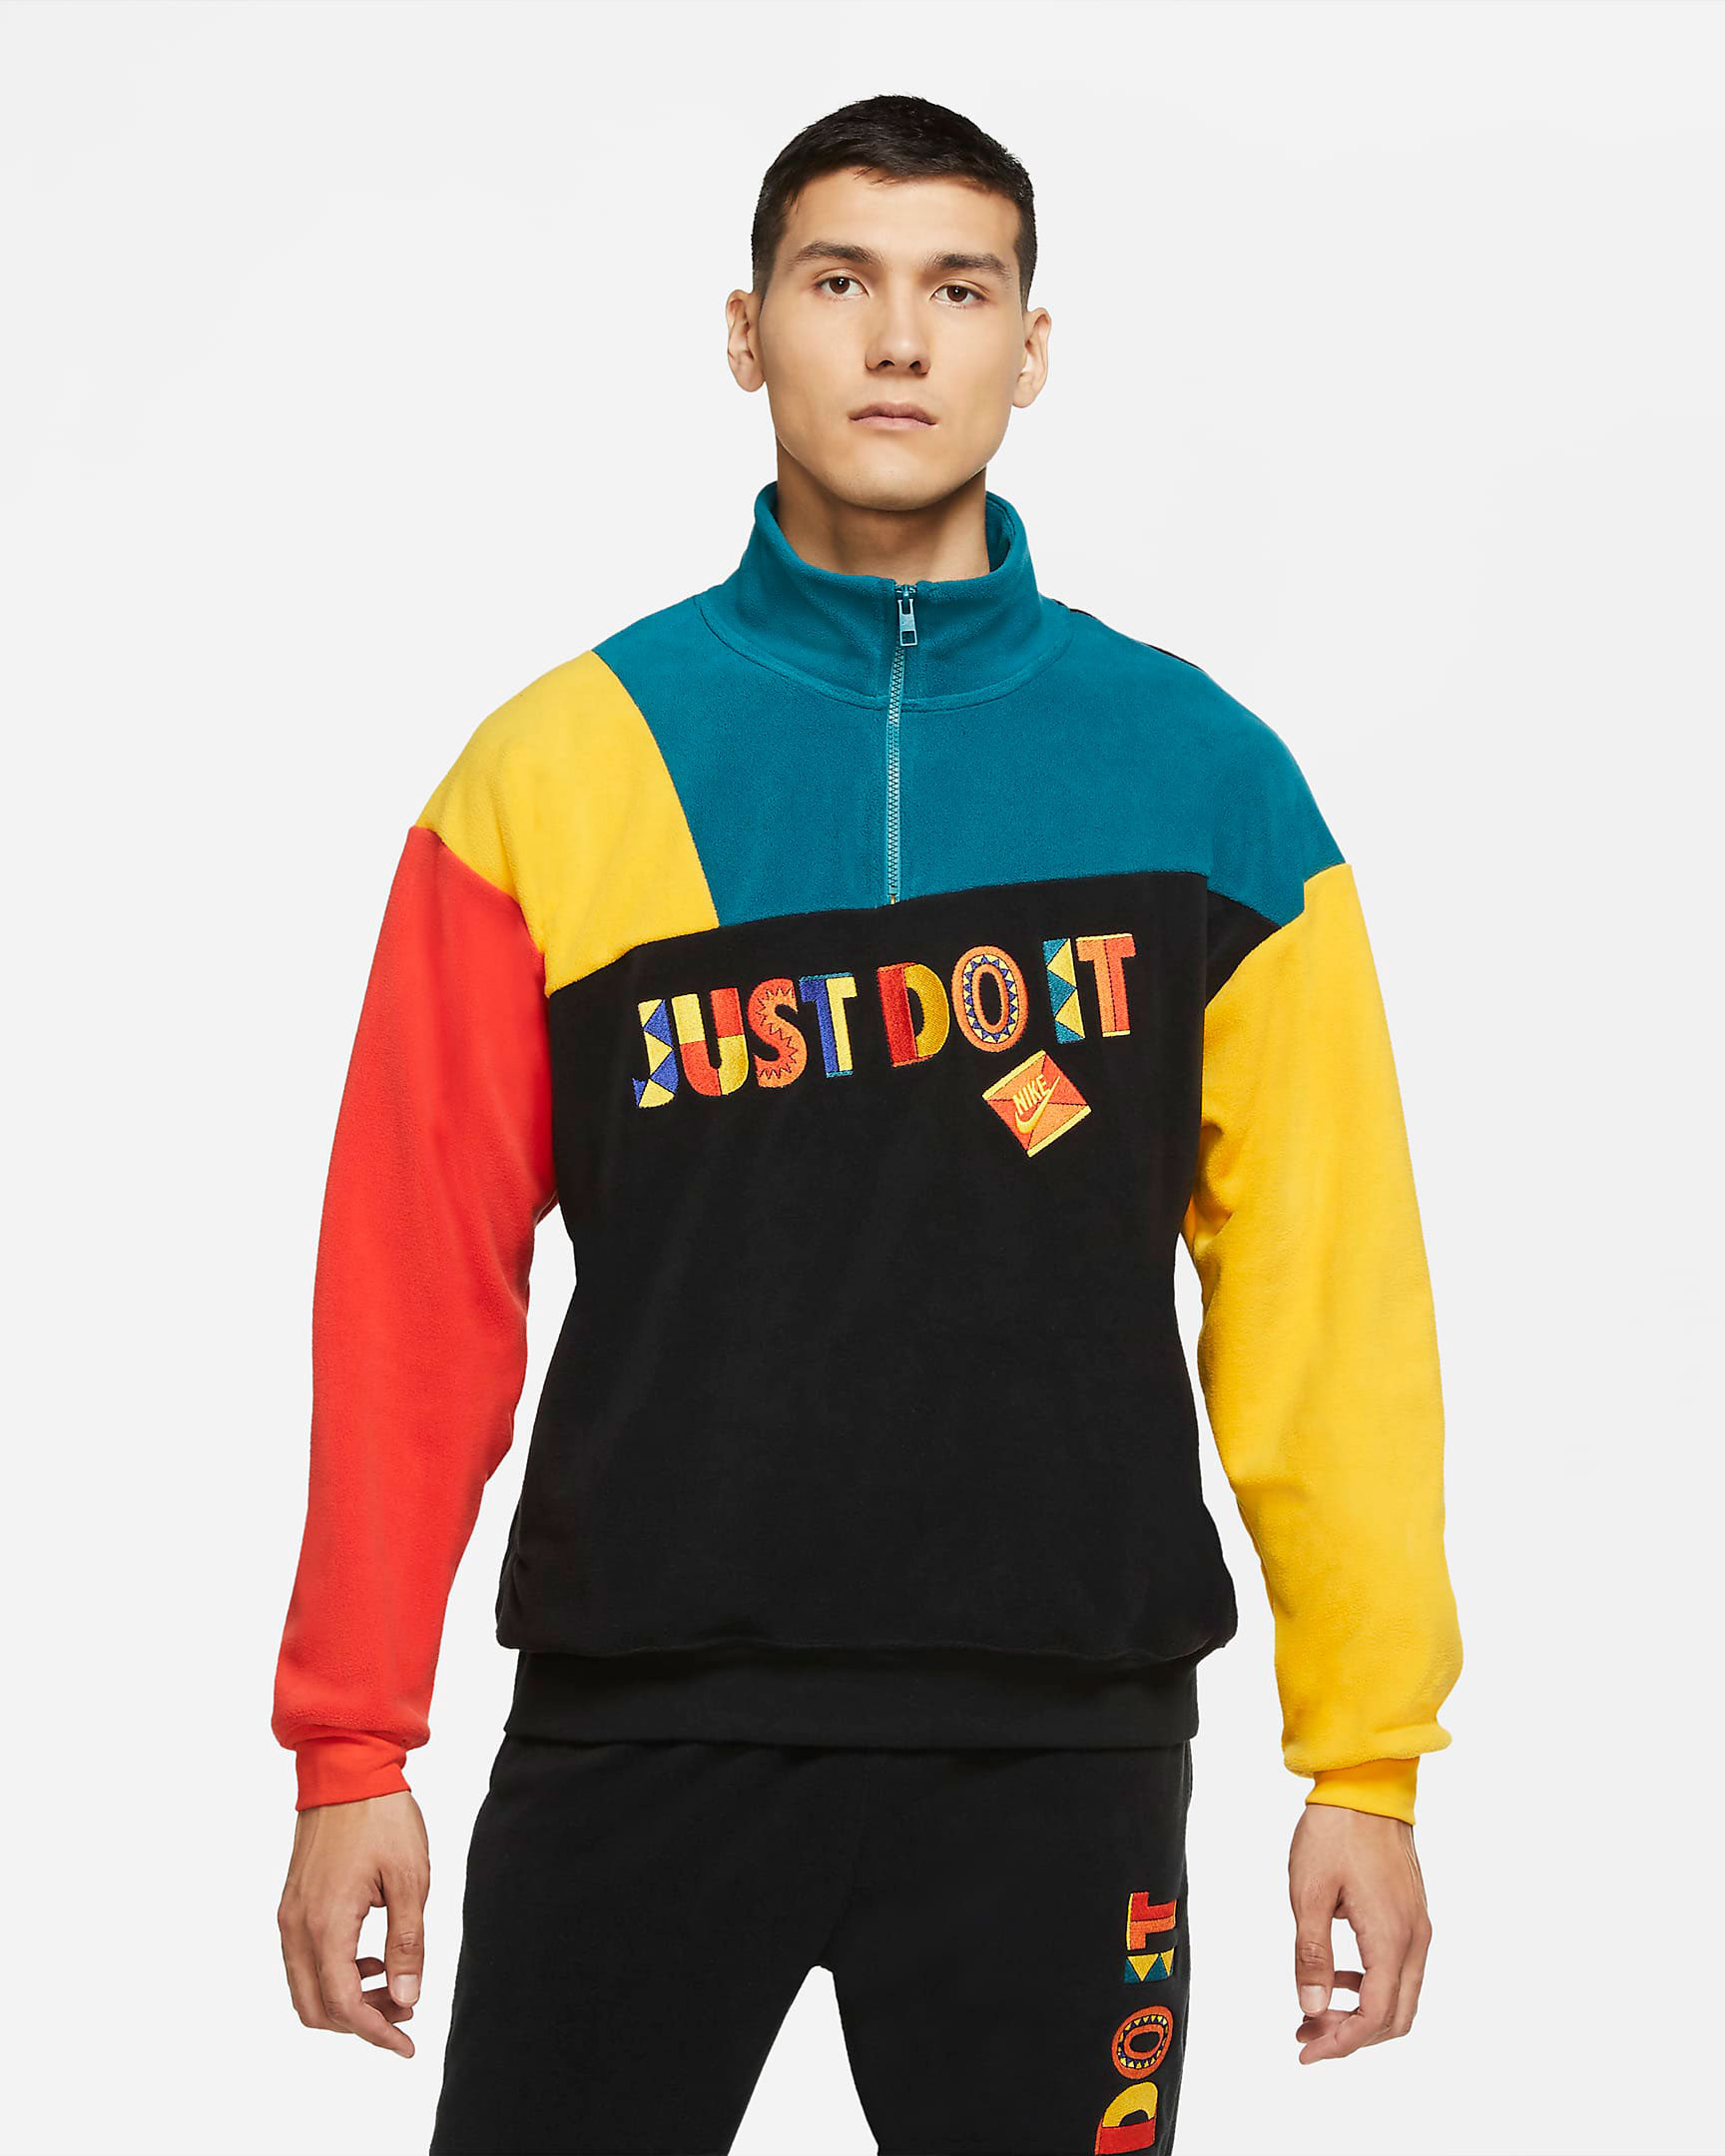 nike-urban-jungle-live-together-play-together-half-zip-top-1